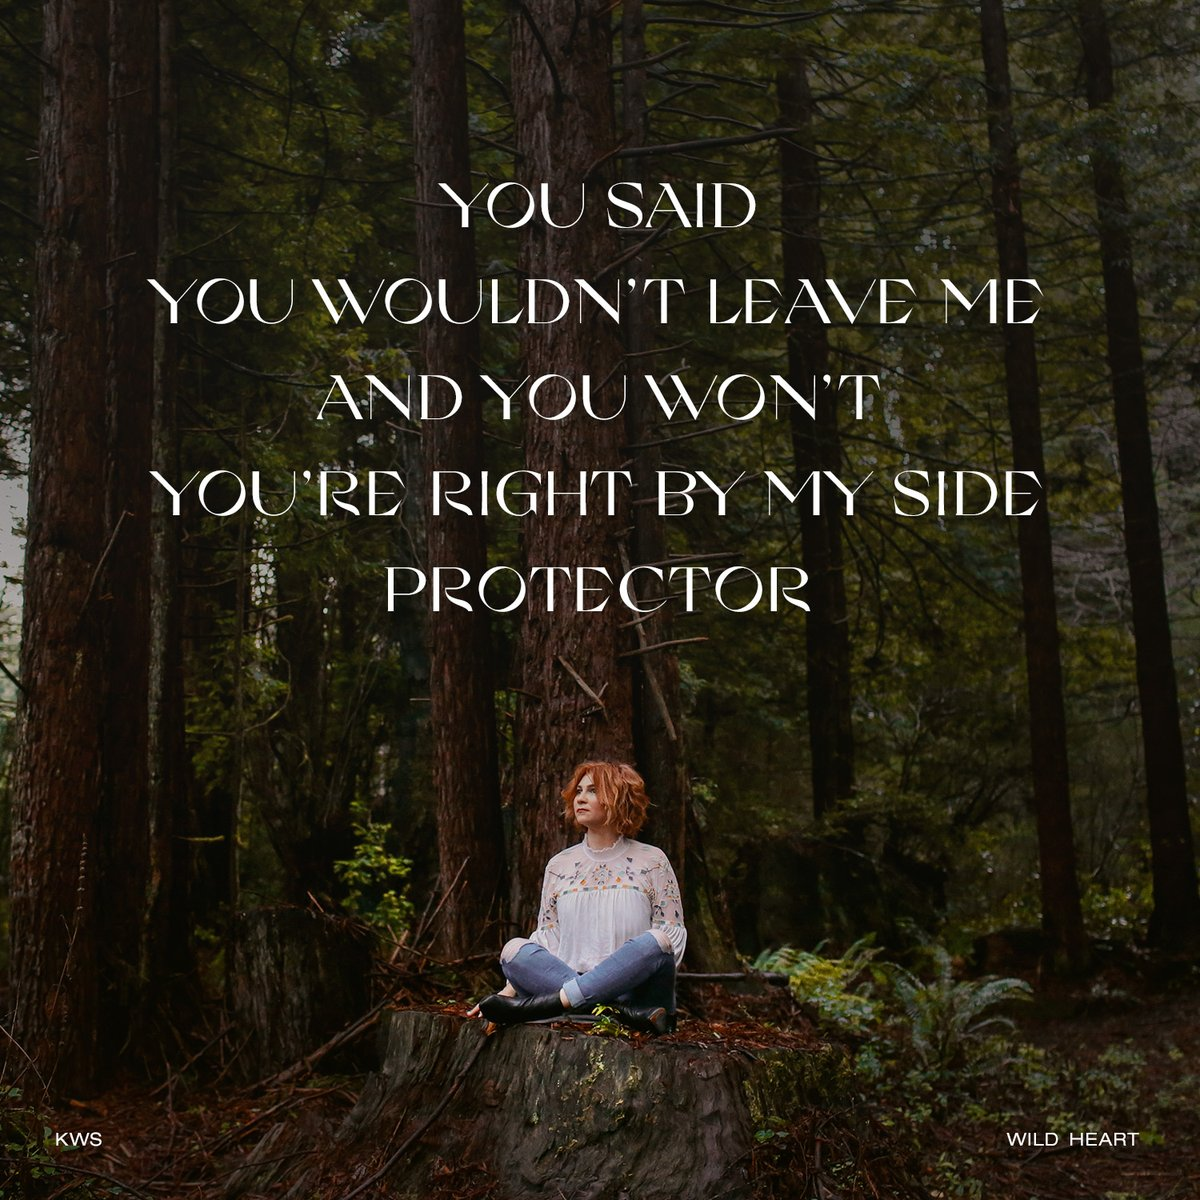 We invite you to experience 'Protector', the first song from Kim Walker-Smith's upcoming album, 'Wild Heart'. Available now wherever you listen to music. https://t.co/XUETGWdI2l